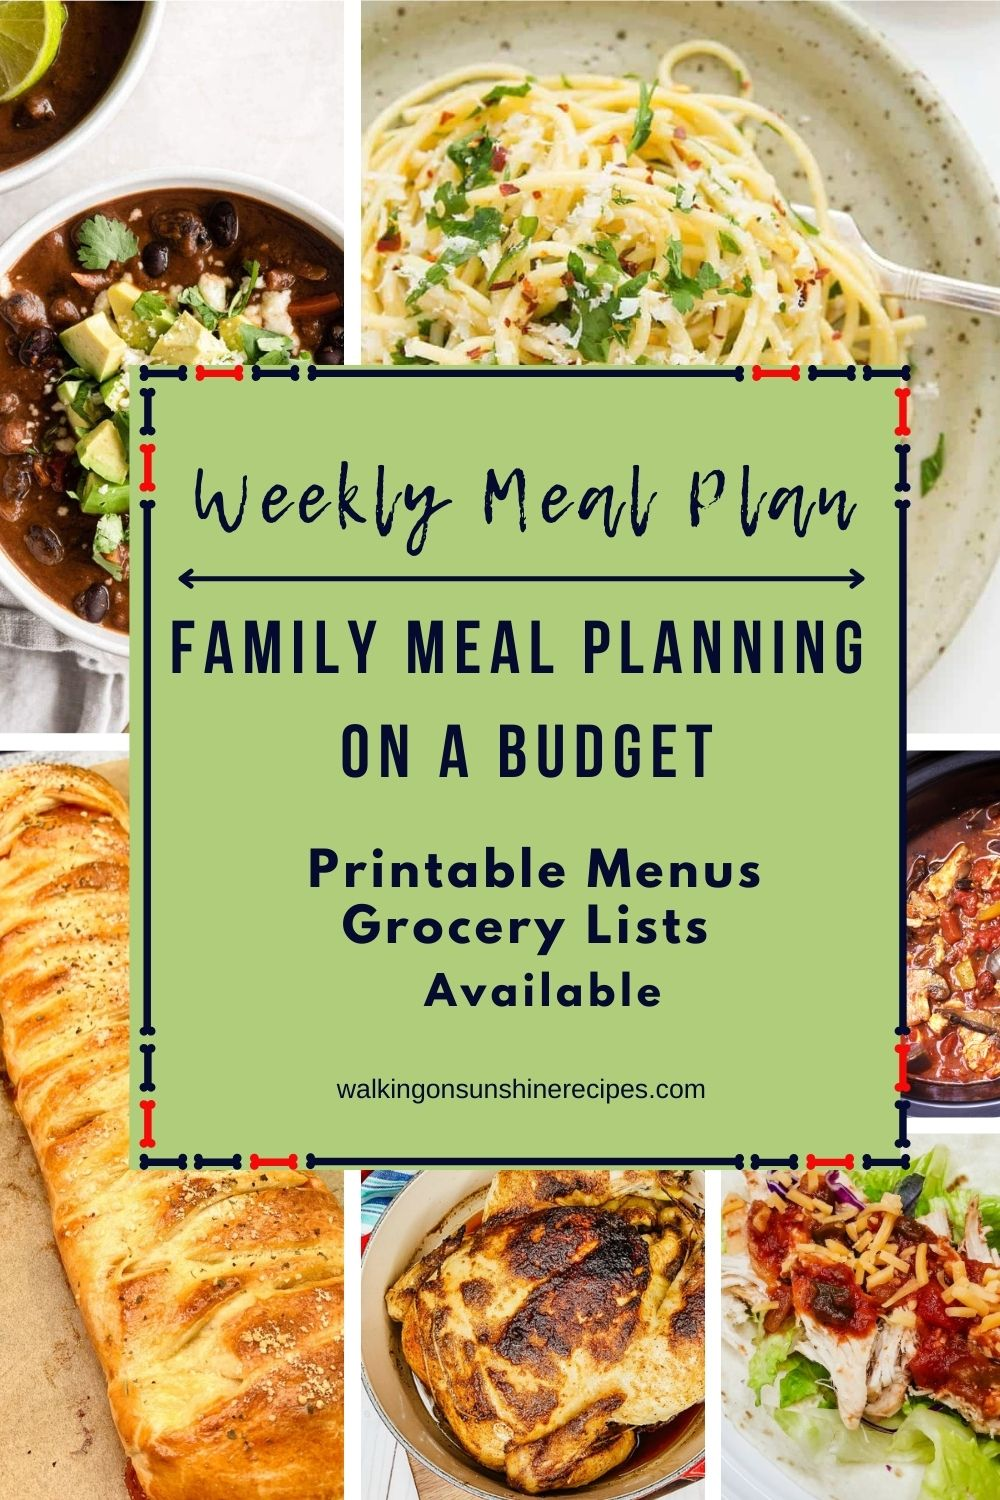 7 recipes with tips for Family Meal Planning on a Budget.